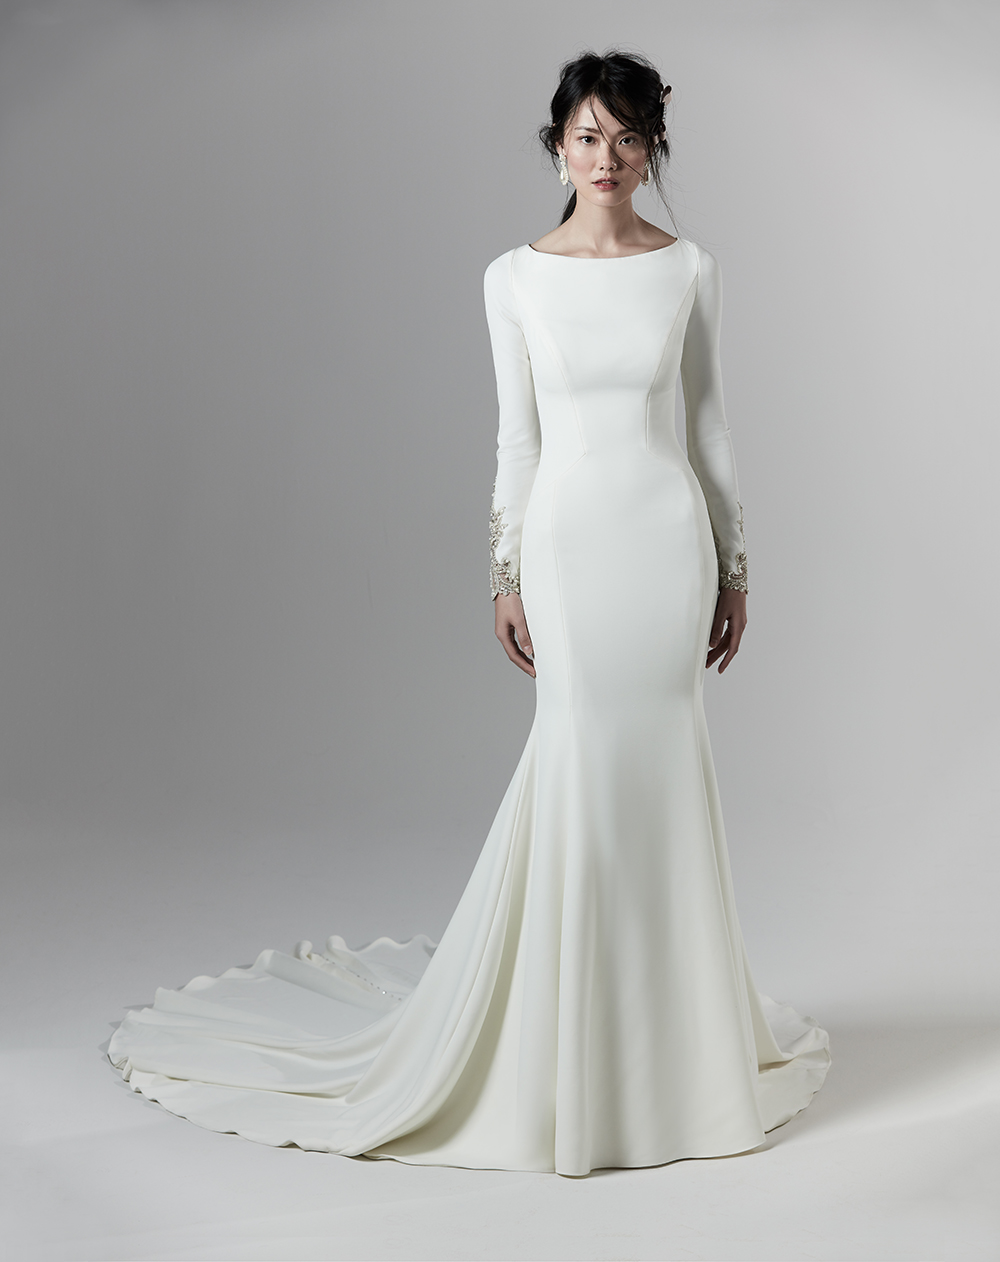 Sottero and Midgely crepe fit and flare dress